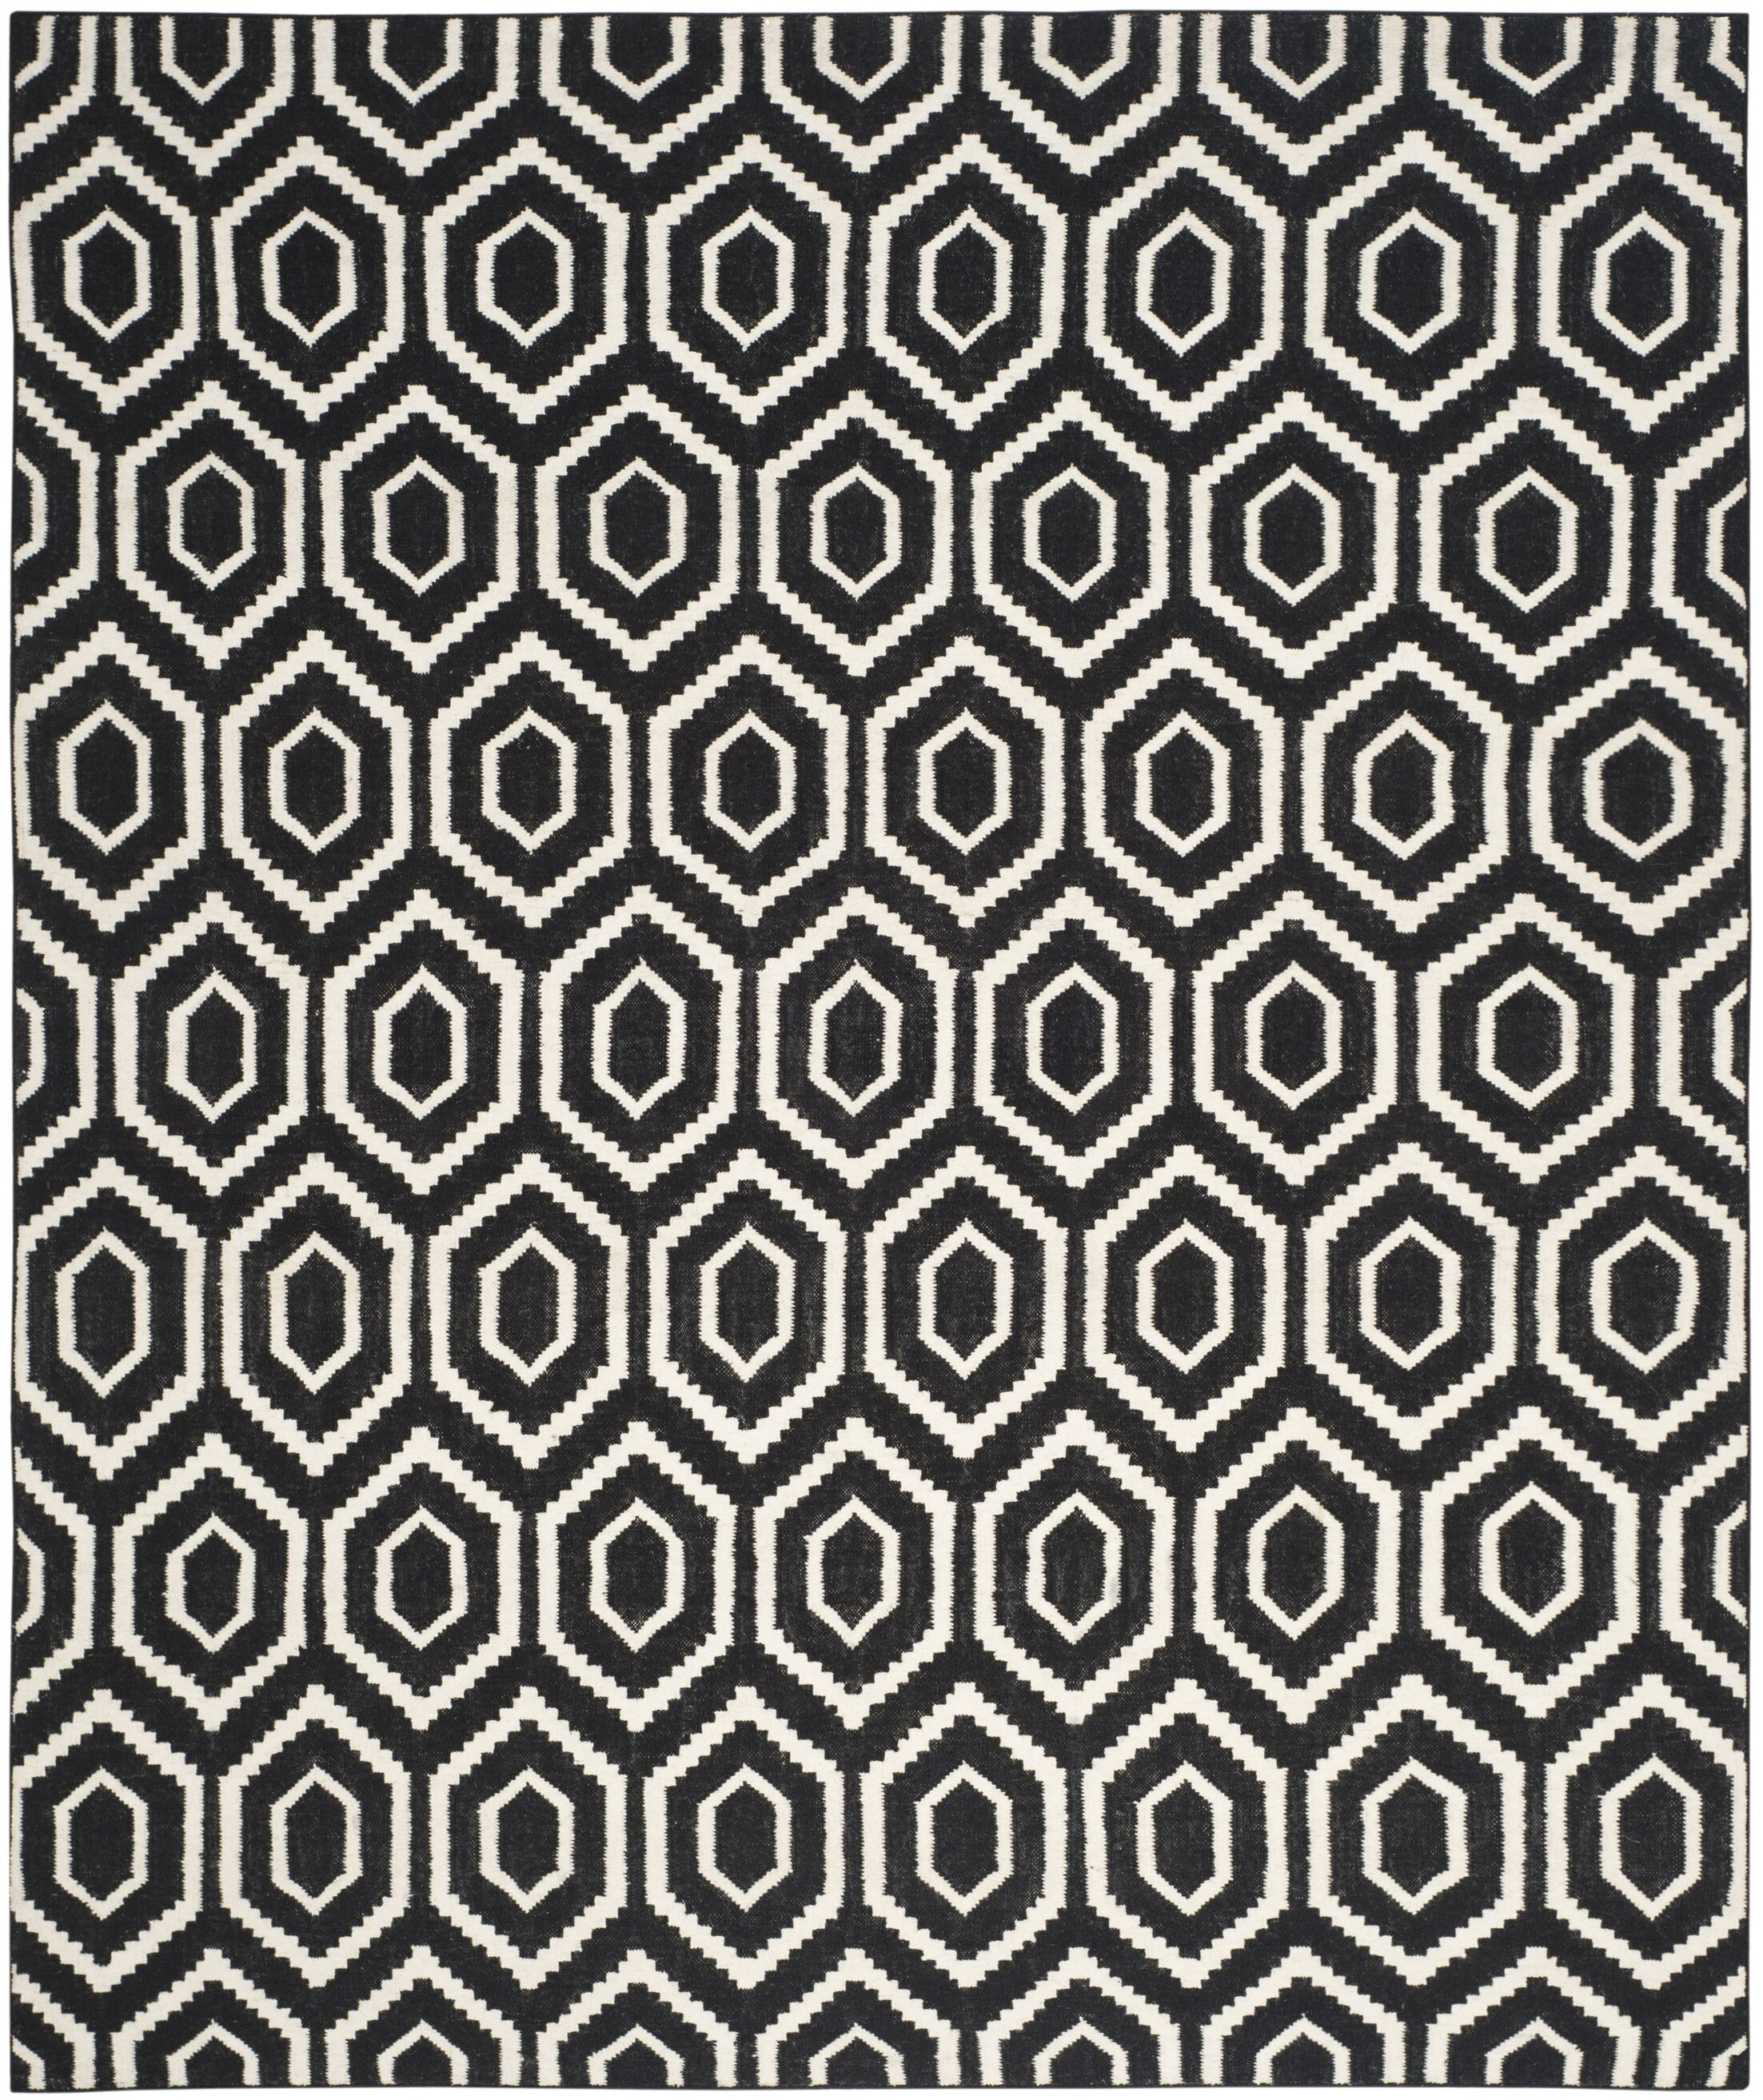 Crawford Hand-Woven Wool Black/Ivory Area Rug Rug Size: Rectangle 5' x 8'